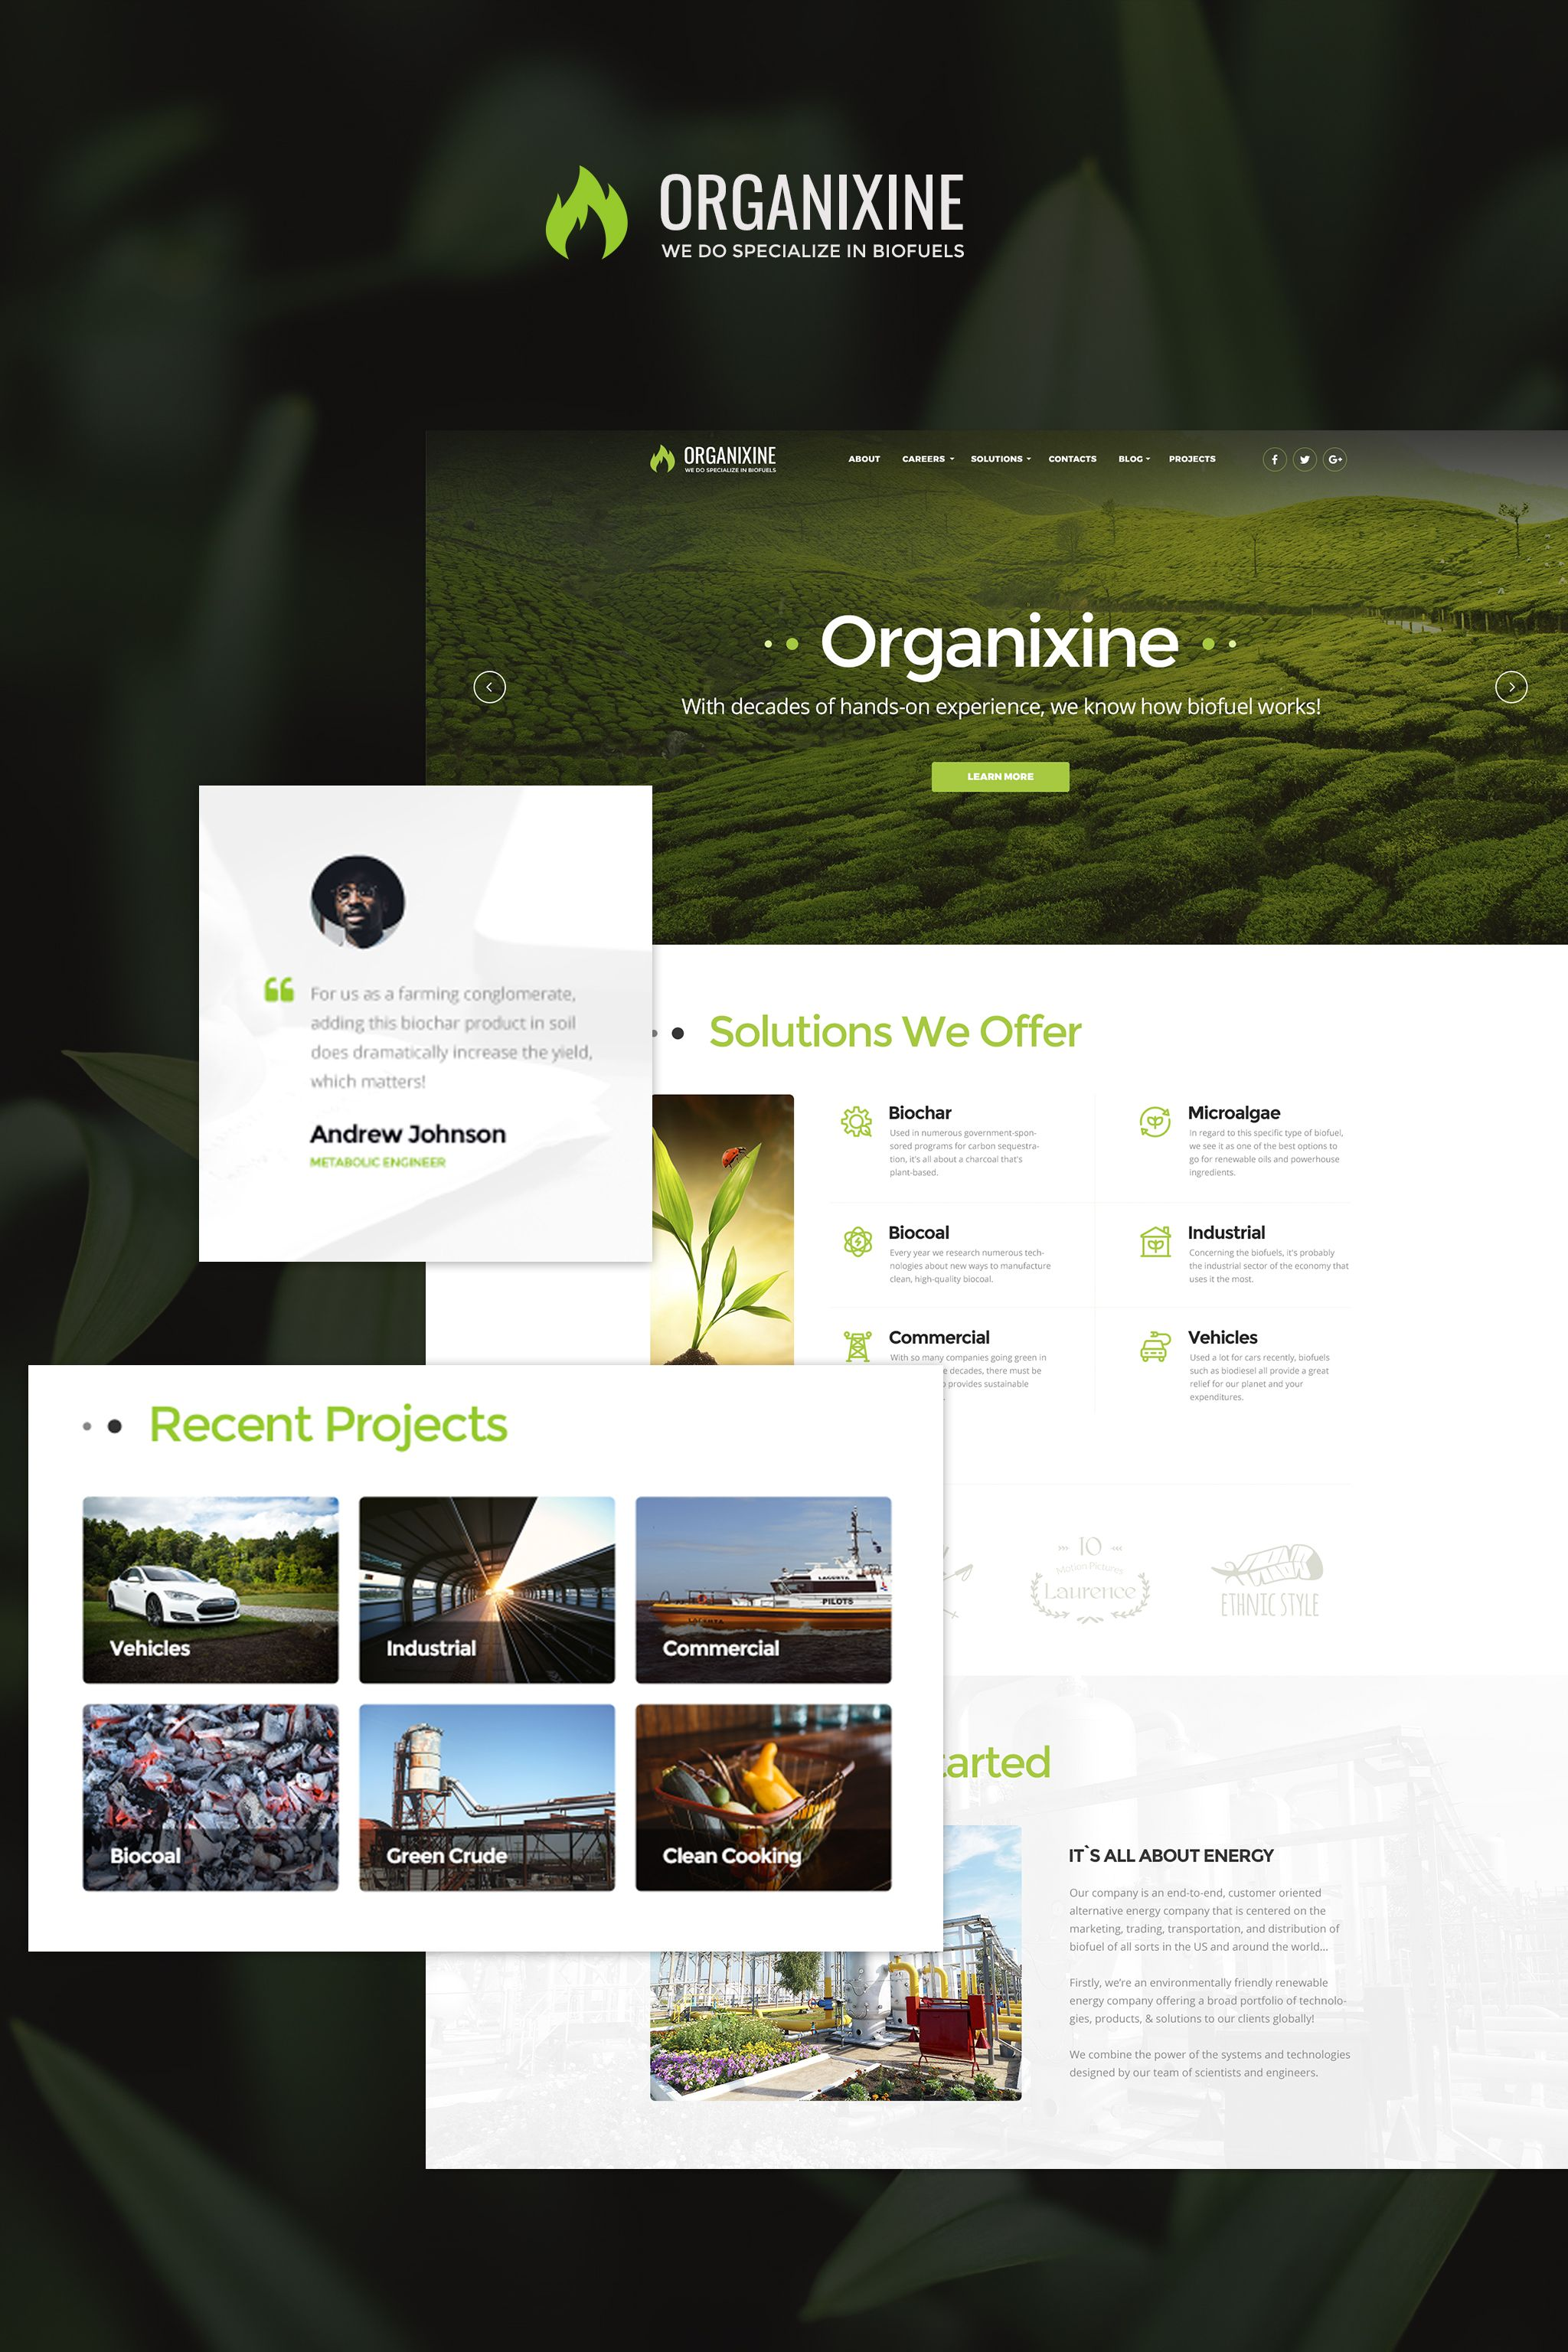 Organixine - Biofuel Company WordPress Theme WordPress Theme ...